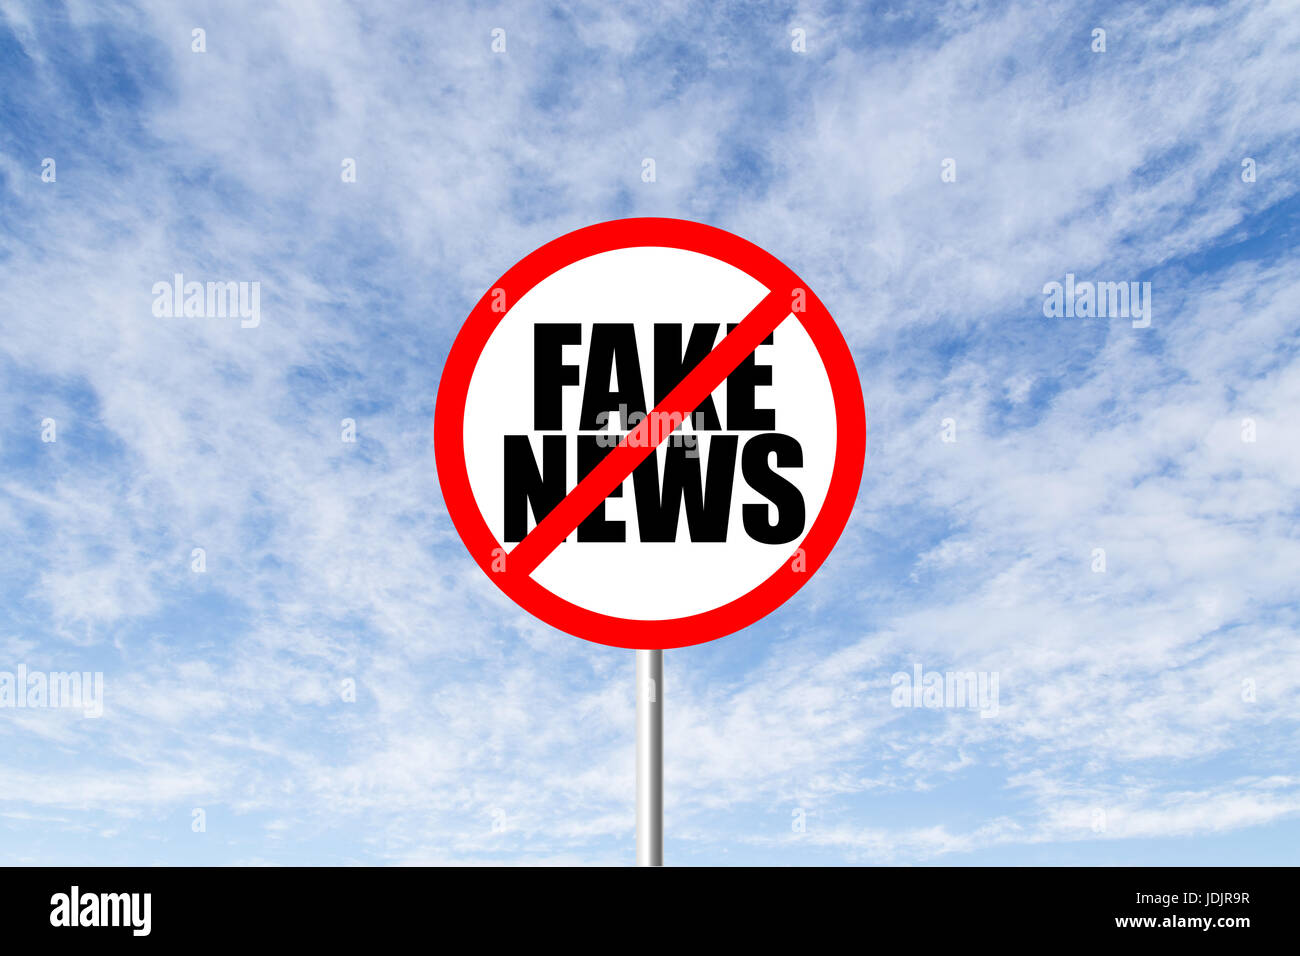 Stop fake news prohibitory traffic sign against blue cloudy sky - Stock Image